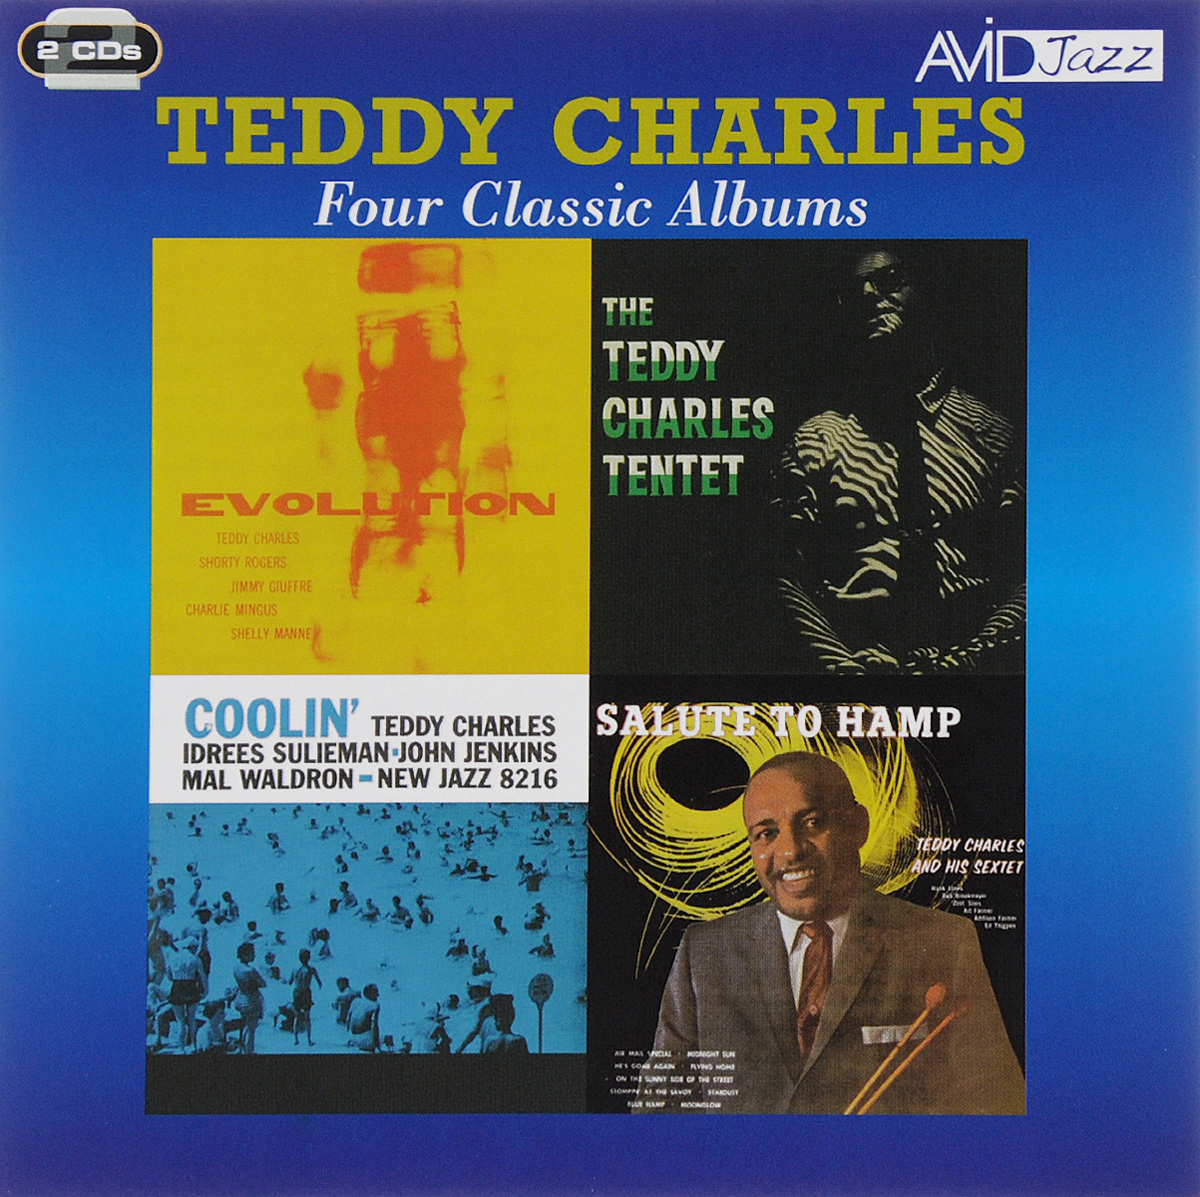 Тедди Чарльз Avid Jazz. Teddy Charles. Four Classic Albums (2 CD) avid dolby surround tools